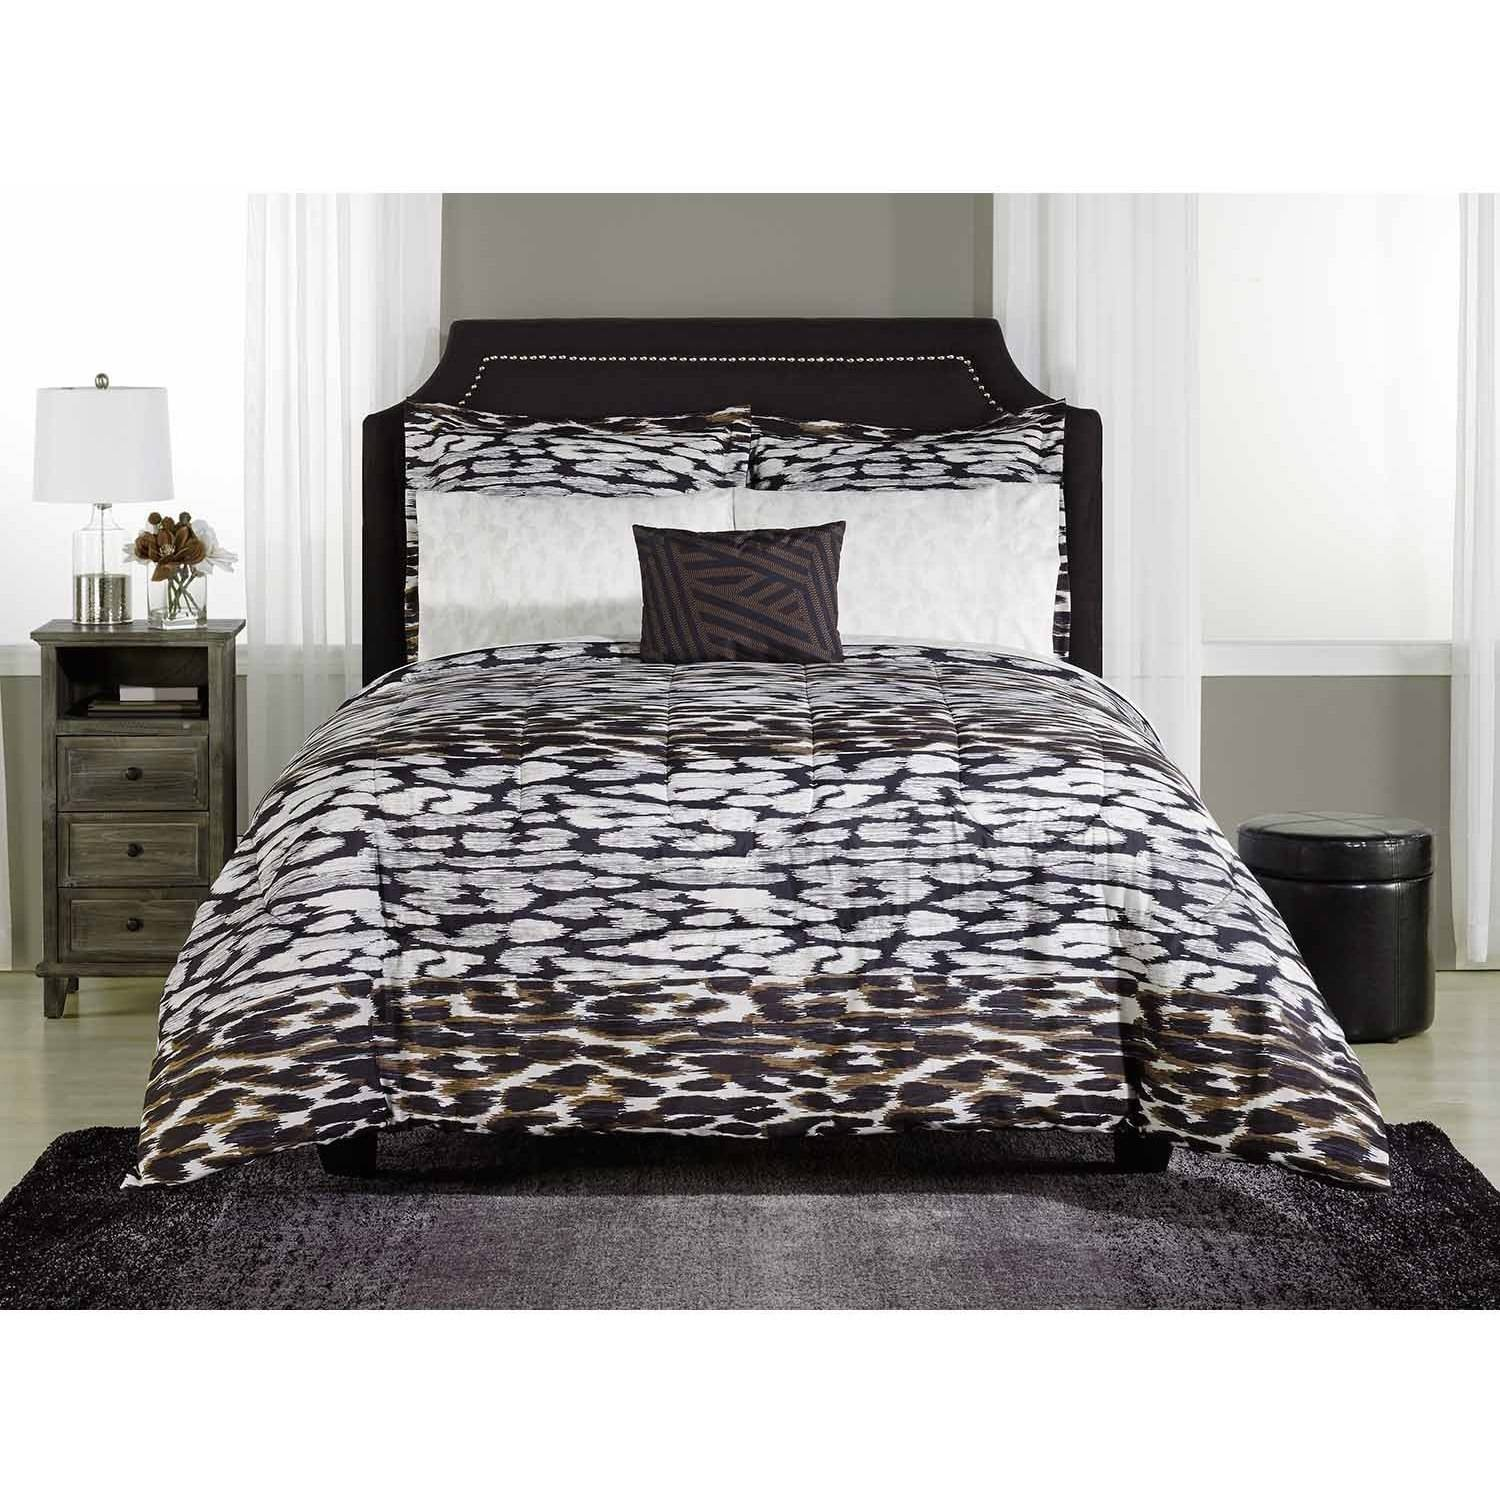 Mainstays Zaria Bed-in-a-Bag Bedding Set